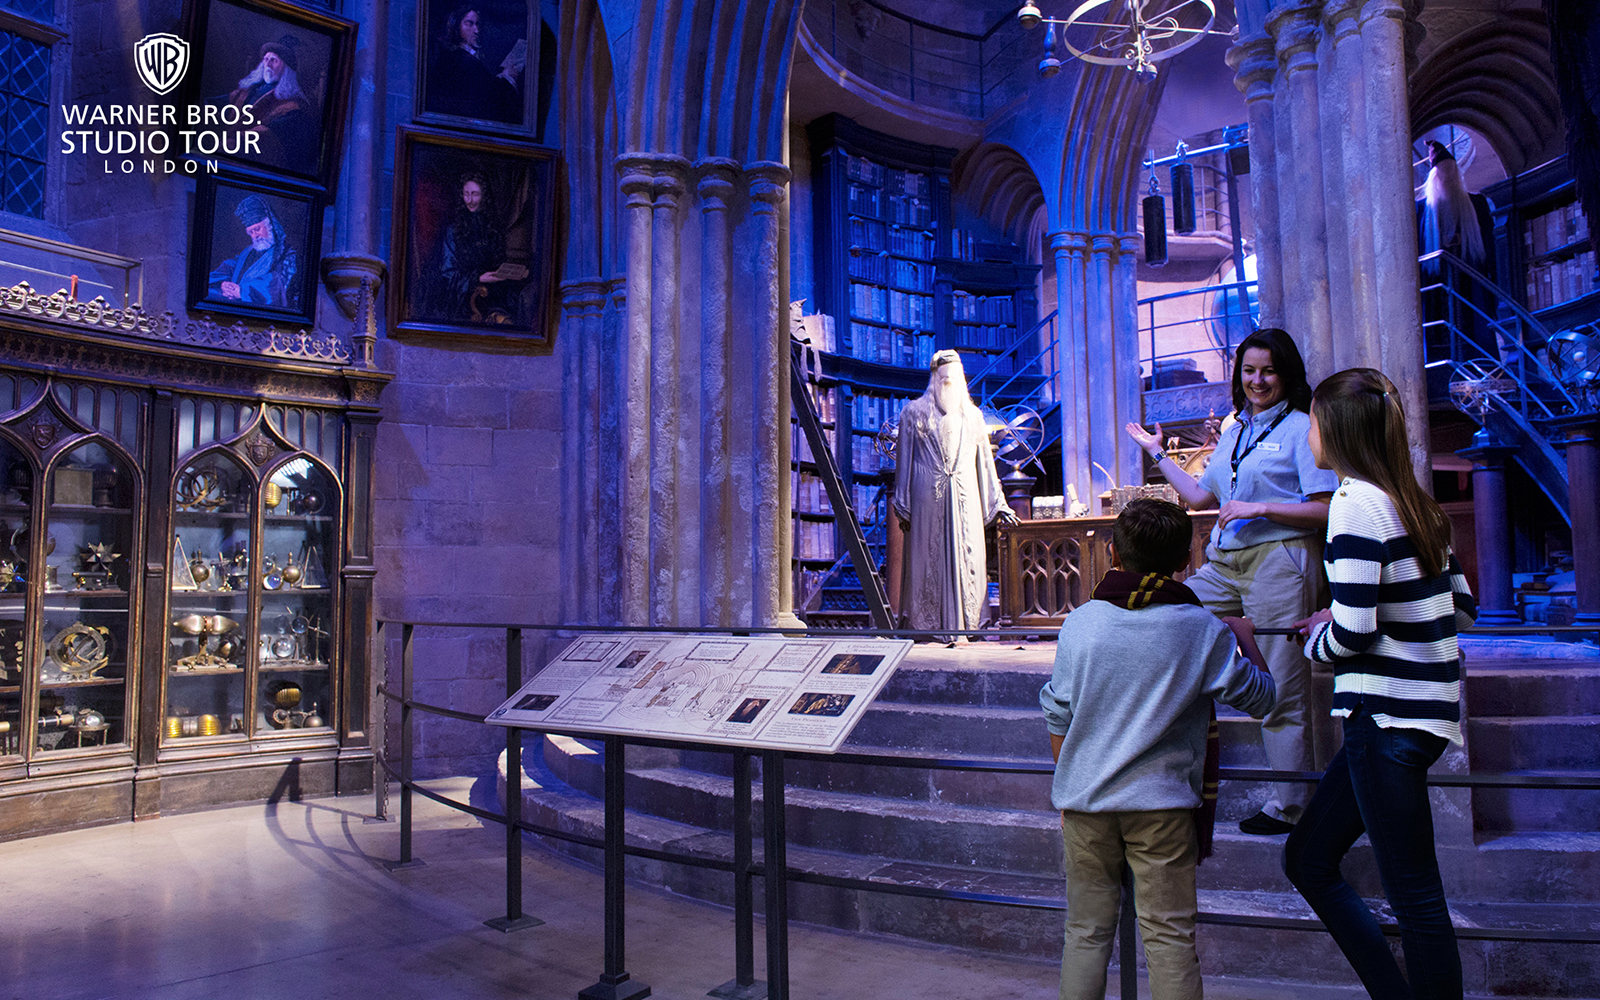 355b3dc2 494b 44da a101 b830f9bb55af 9578 london special guided tour of warner bros studio   the making of harry potter 02